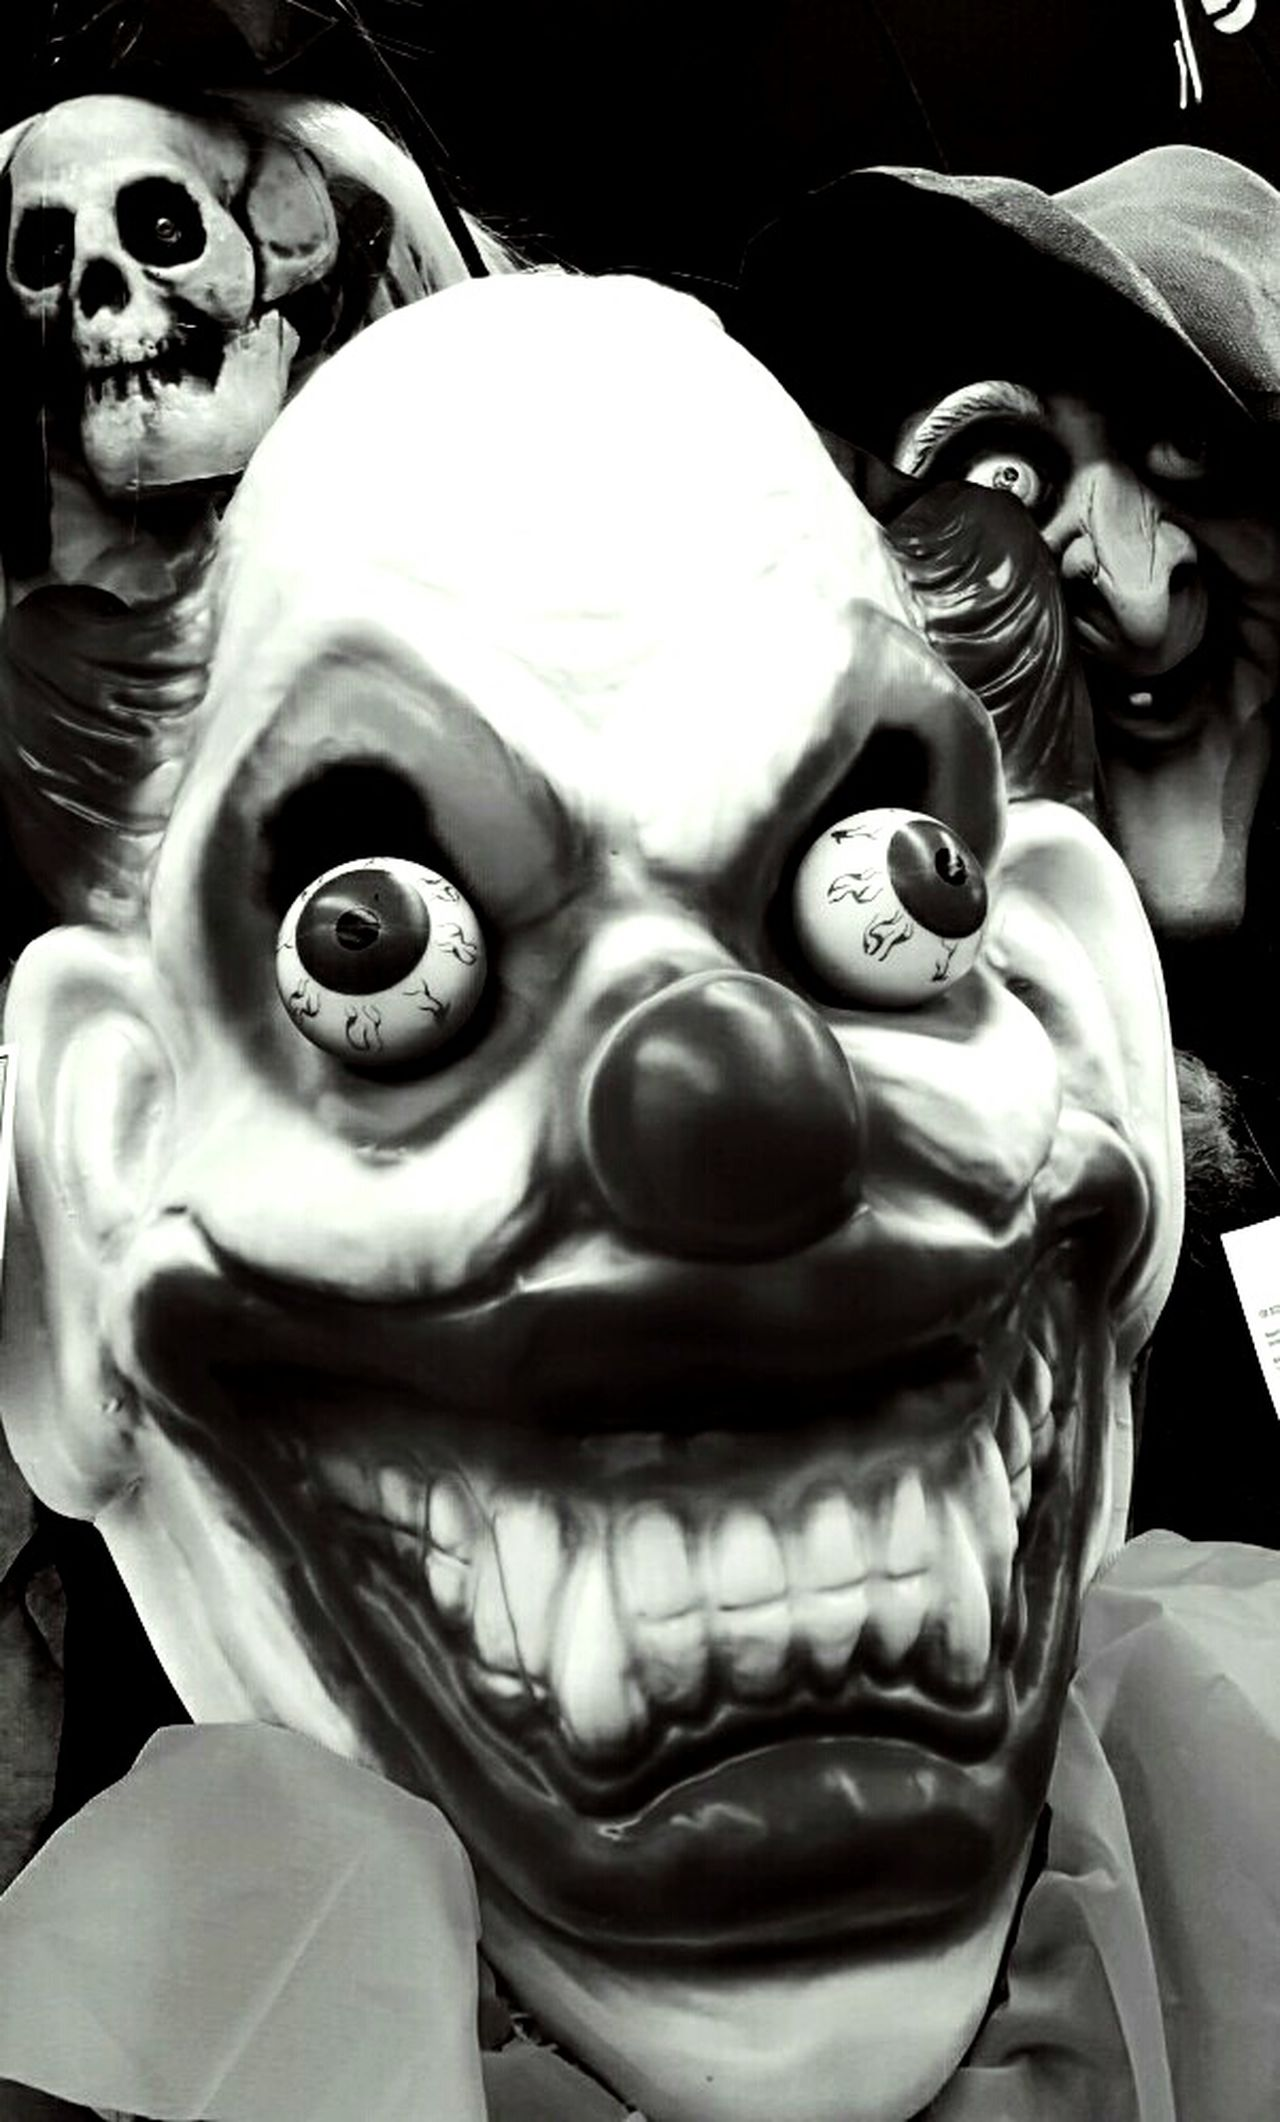 Halloween_Collection Happy Halloween Frightnight Scary Clowns Masks Freaky Capture The Moment